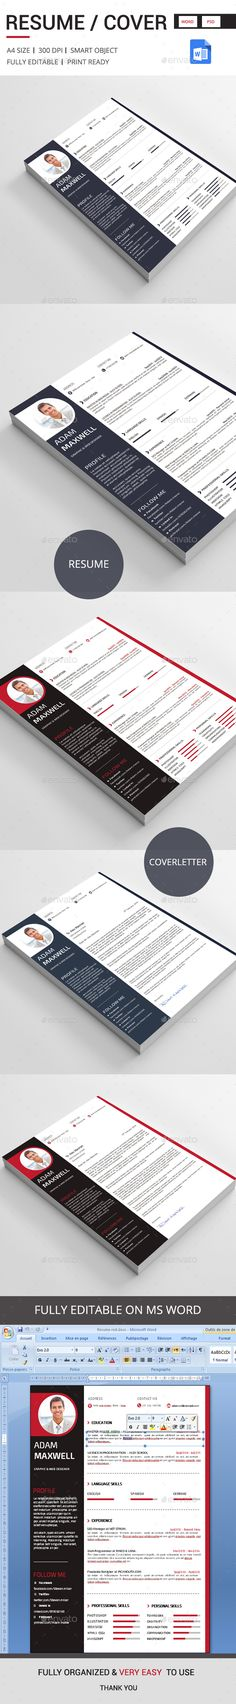 Corporate Lawyer CV Resume Template Cv resume template, Lawyer - size font for resume